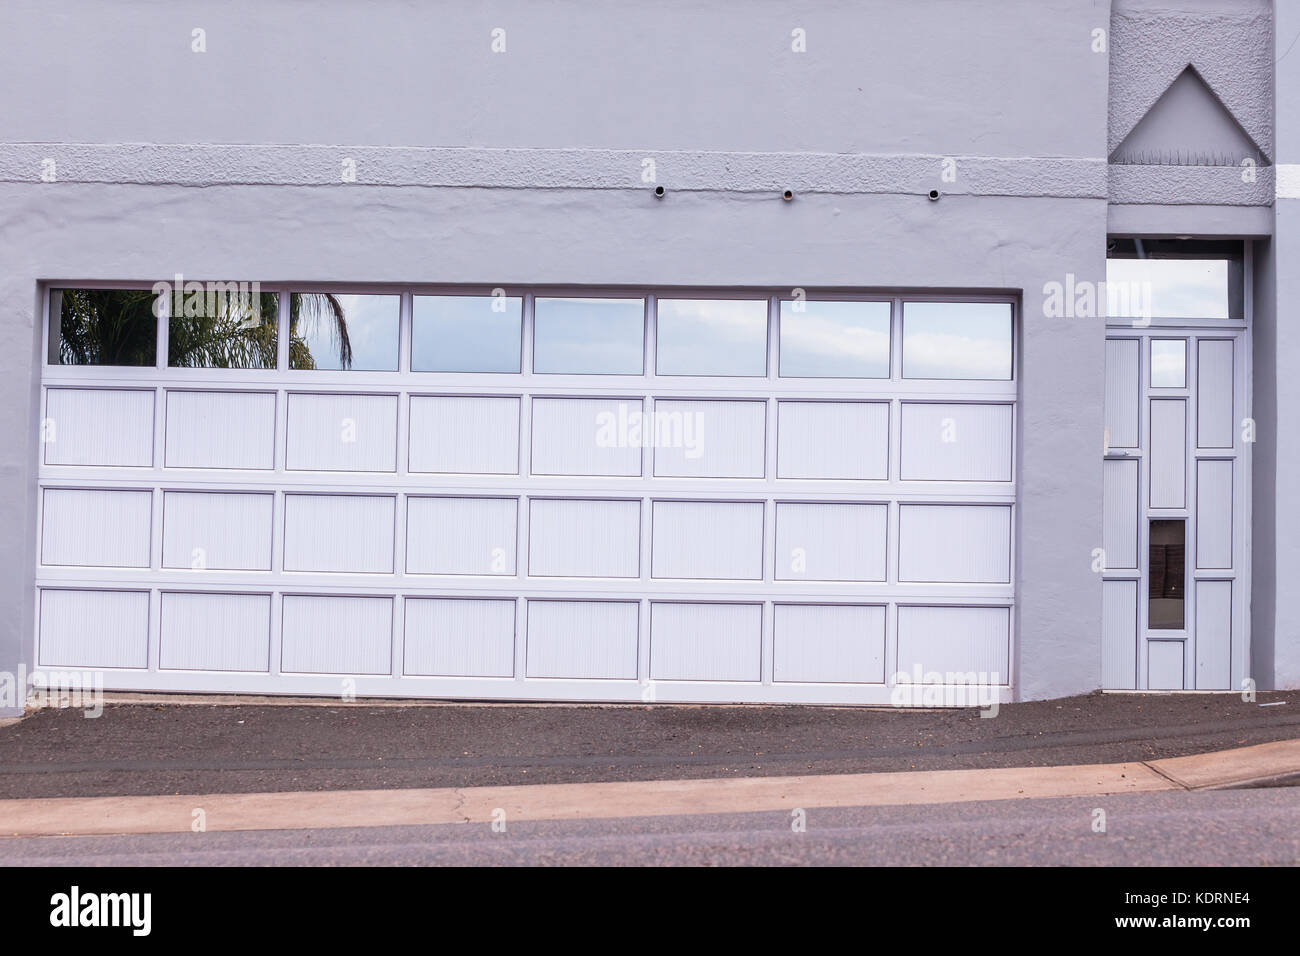 16 garage door with pedestrian door decor23 for 16 garage door